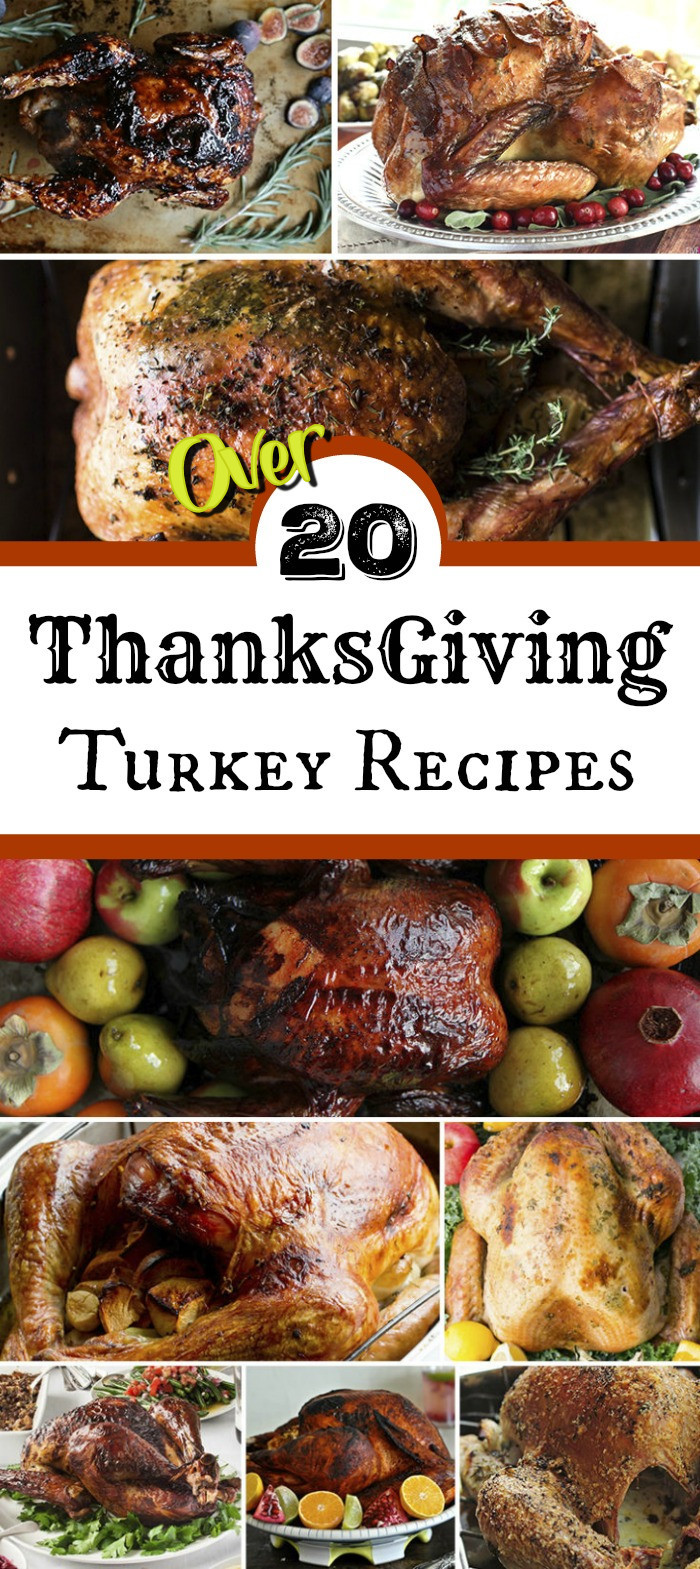 Best Turkey Recipes Thanksgiving  Thanksgiving Turkey Recipes for the Best Thanksgiving